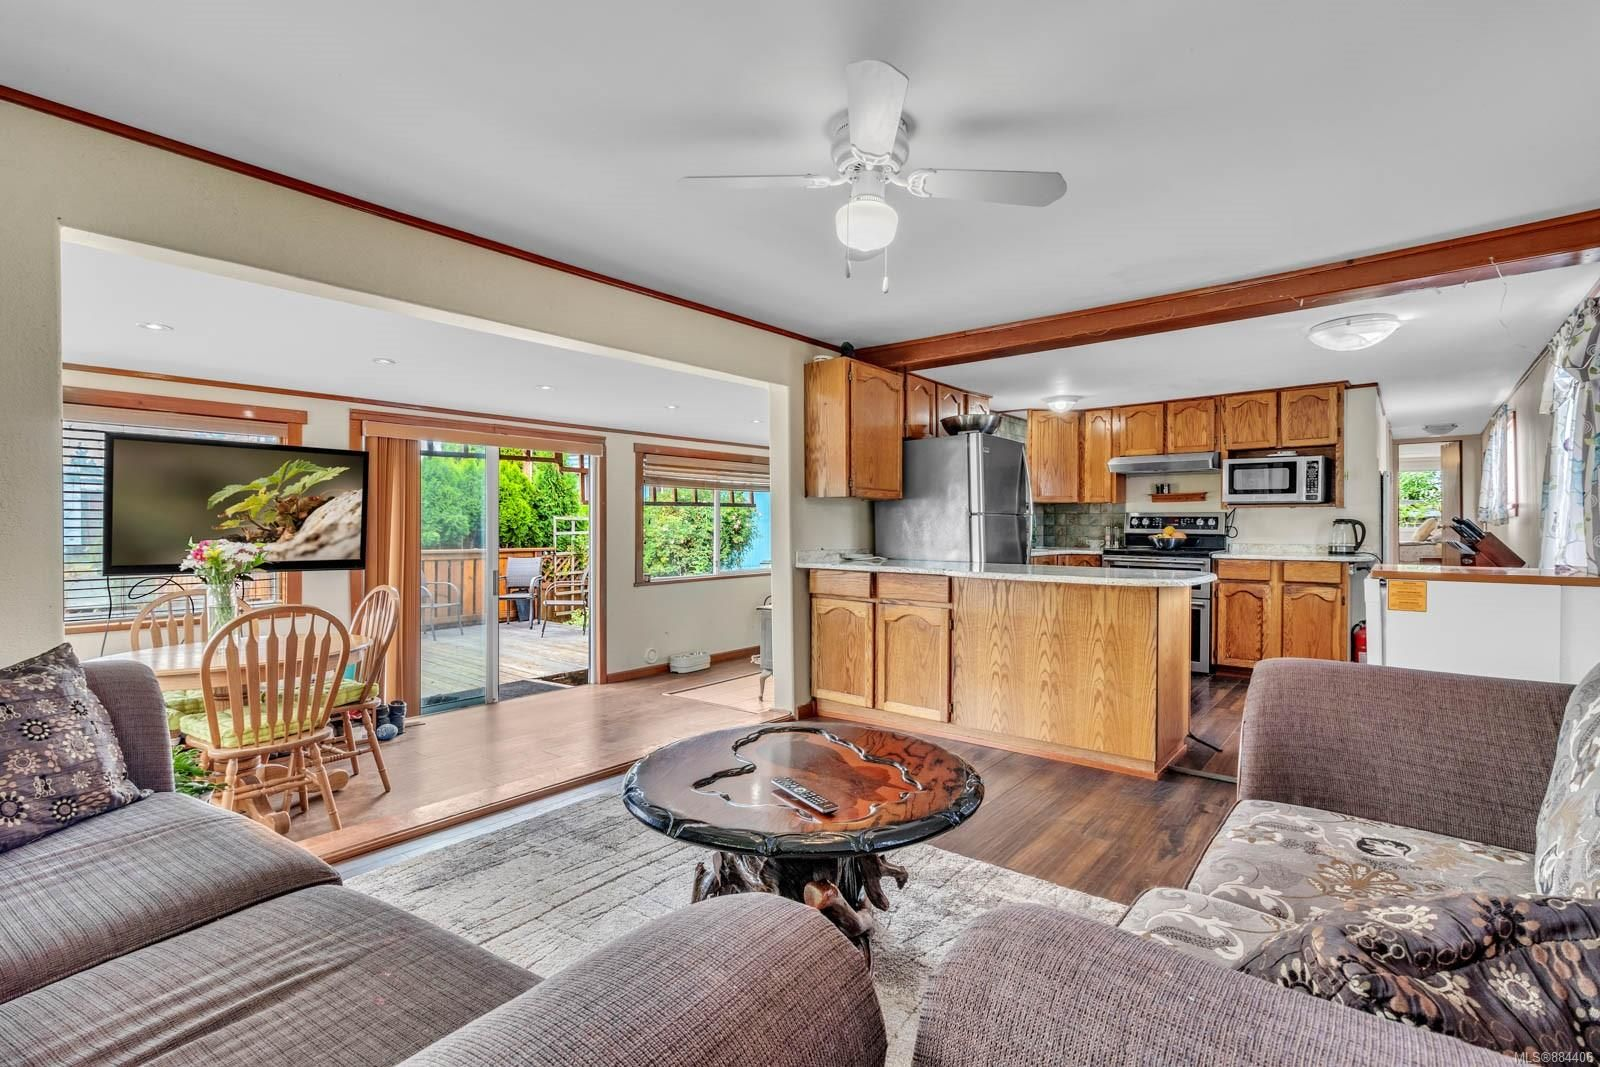 Open concept home in a park that allows kids and 2 pets with no size restriction